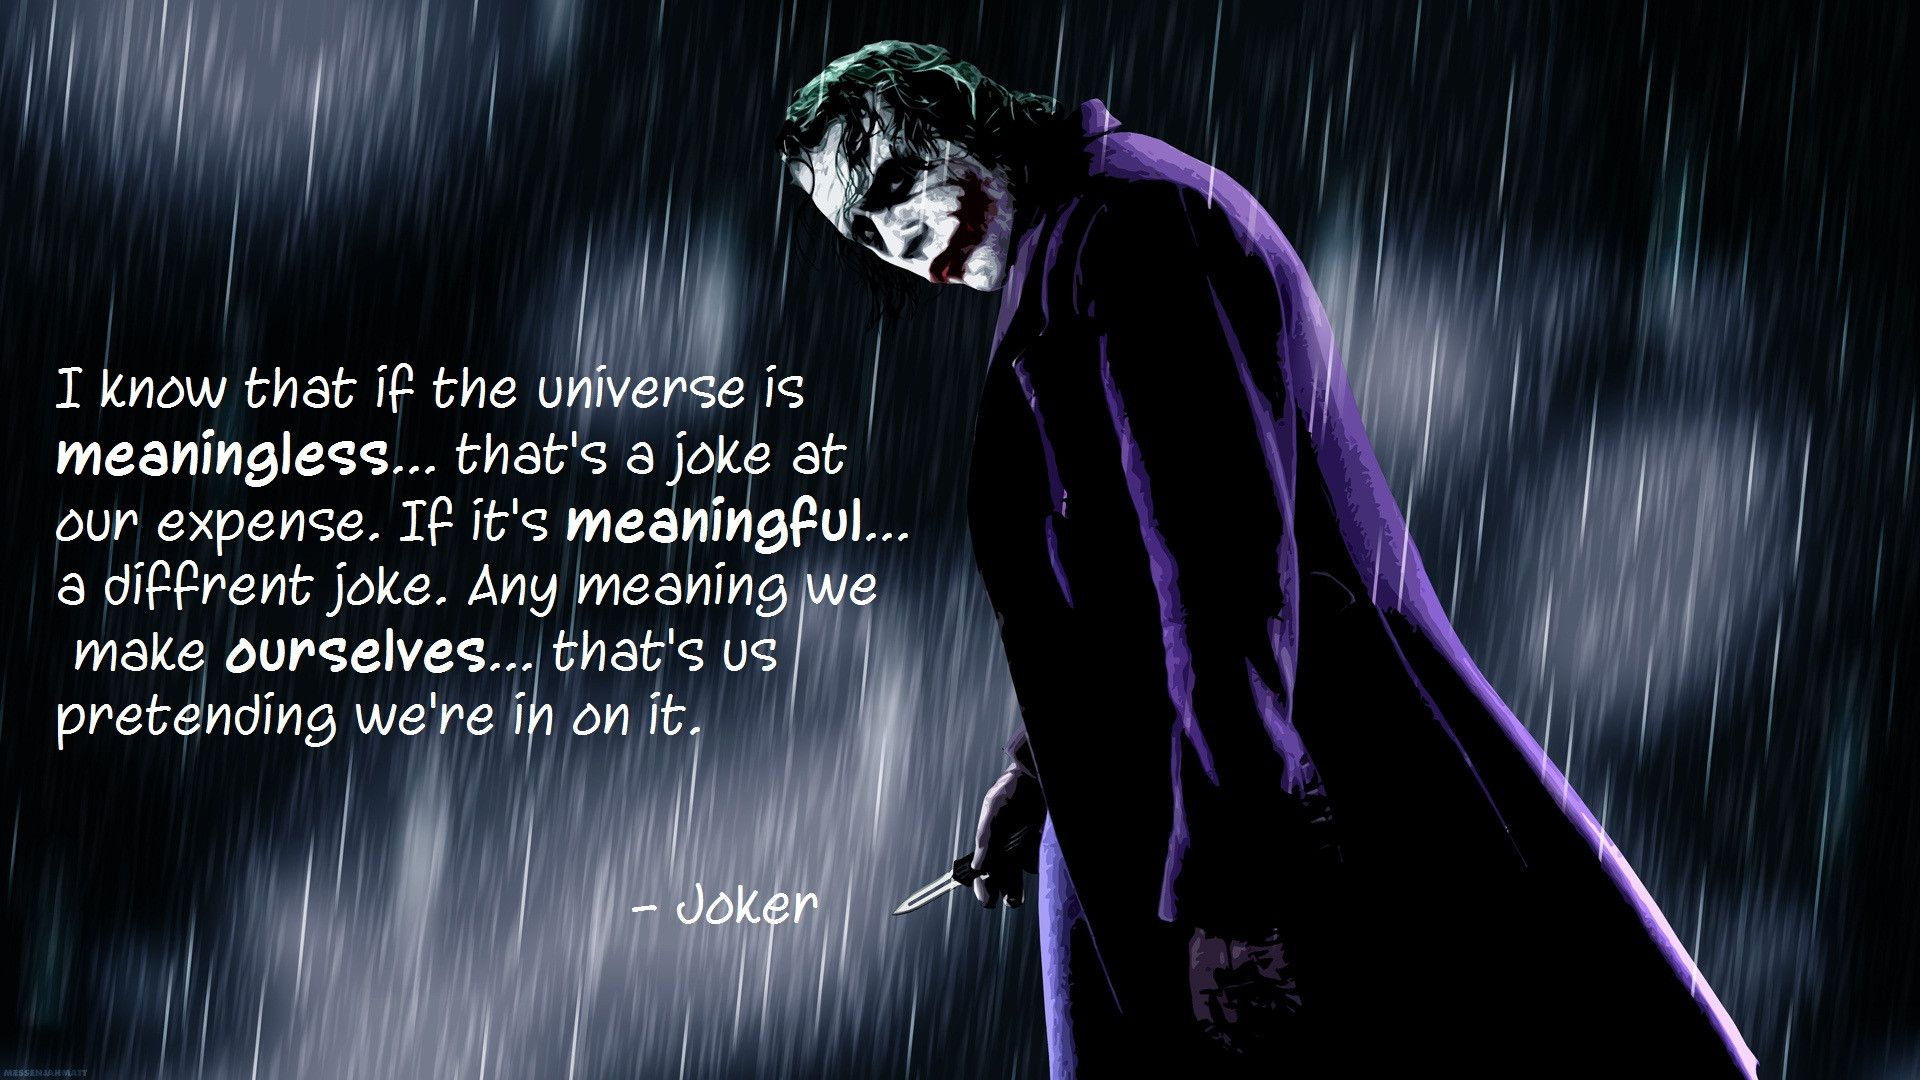 The Dark Knight Quotes: My What Big Teeth You